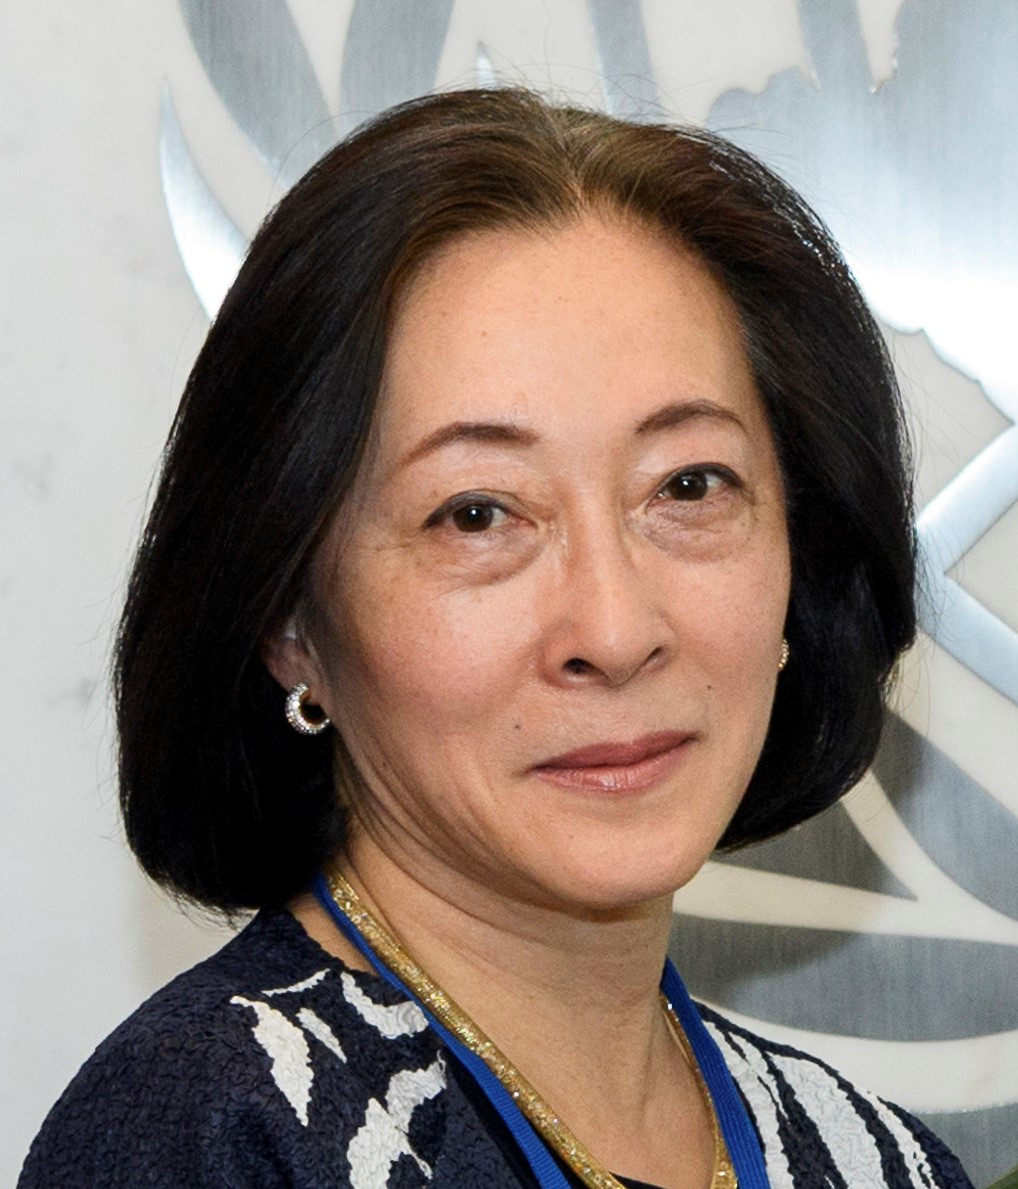 MIZUTORI  Mami Special Representative of the Secretary-General for Disaster Risk Reduction